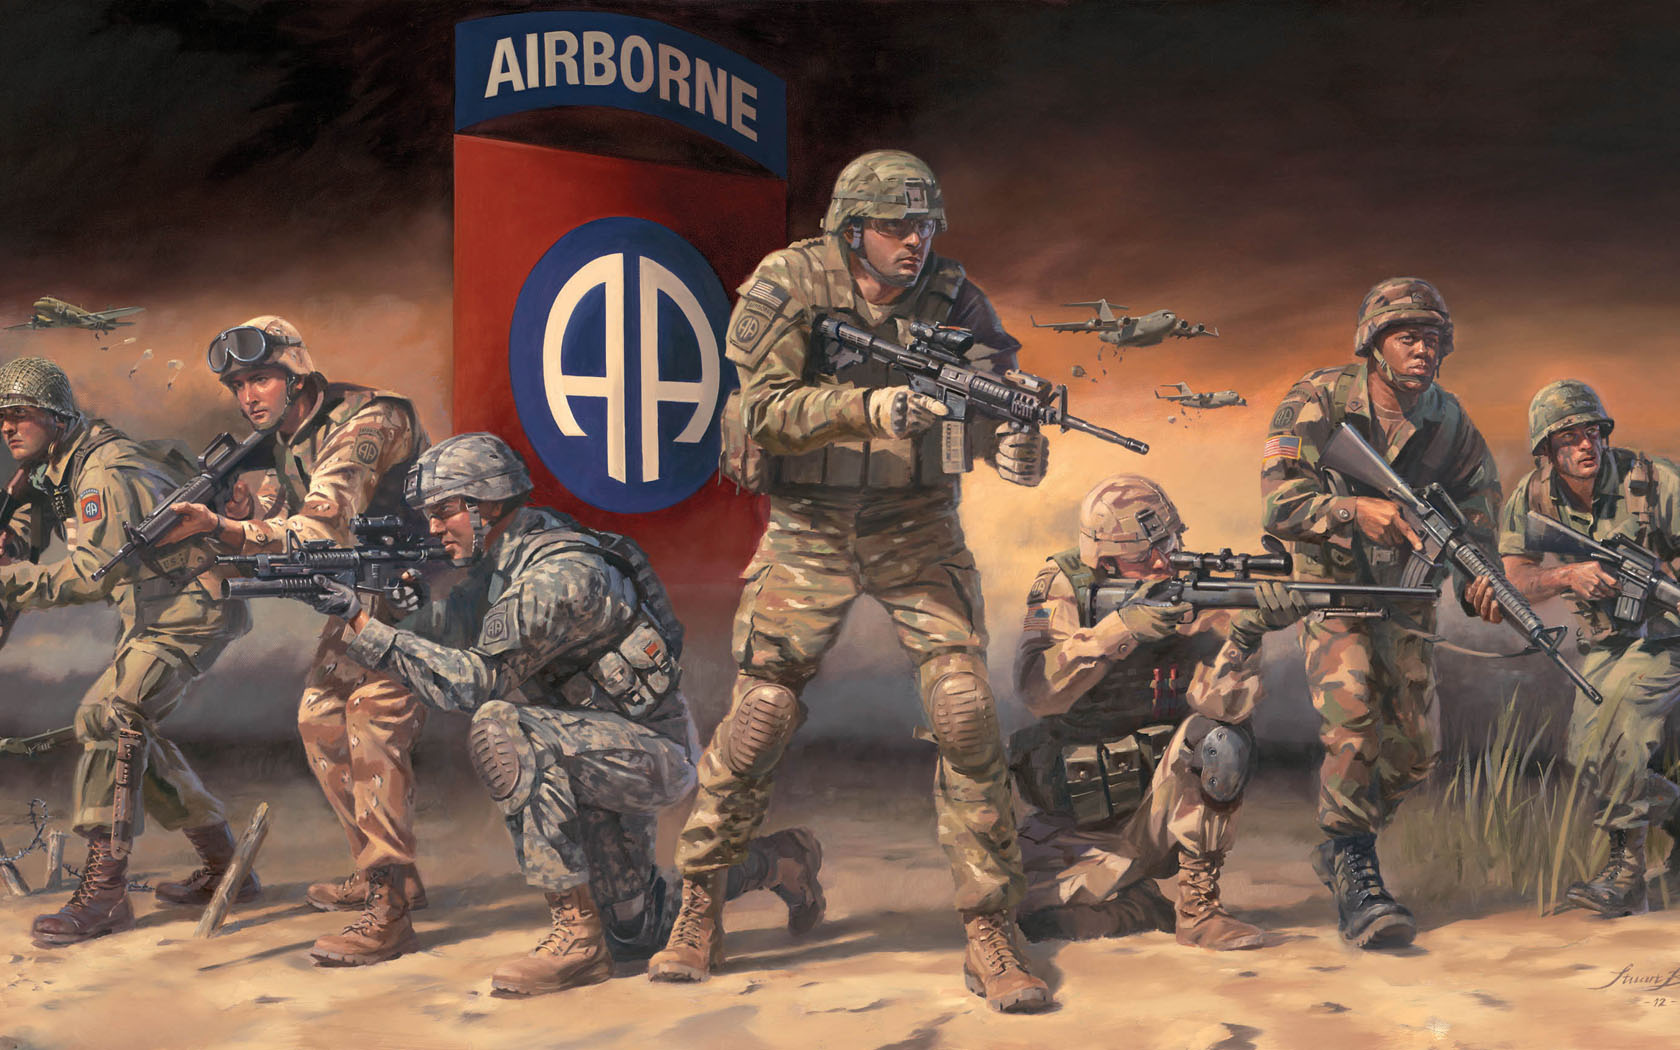 82nd Airborne Wallpaper - WallpaperSafari